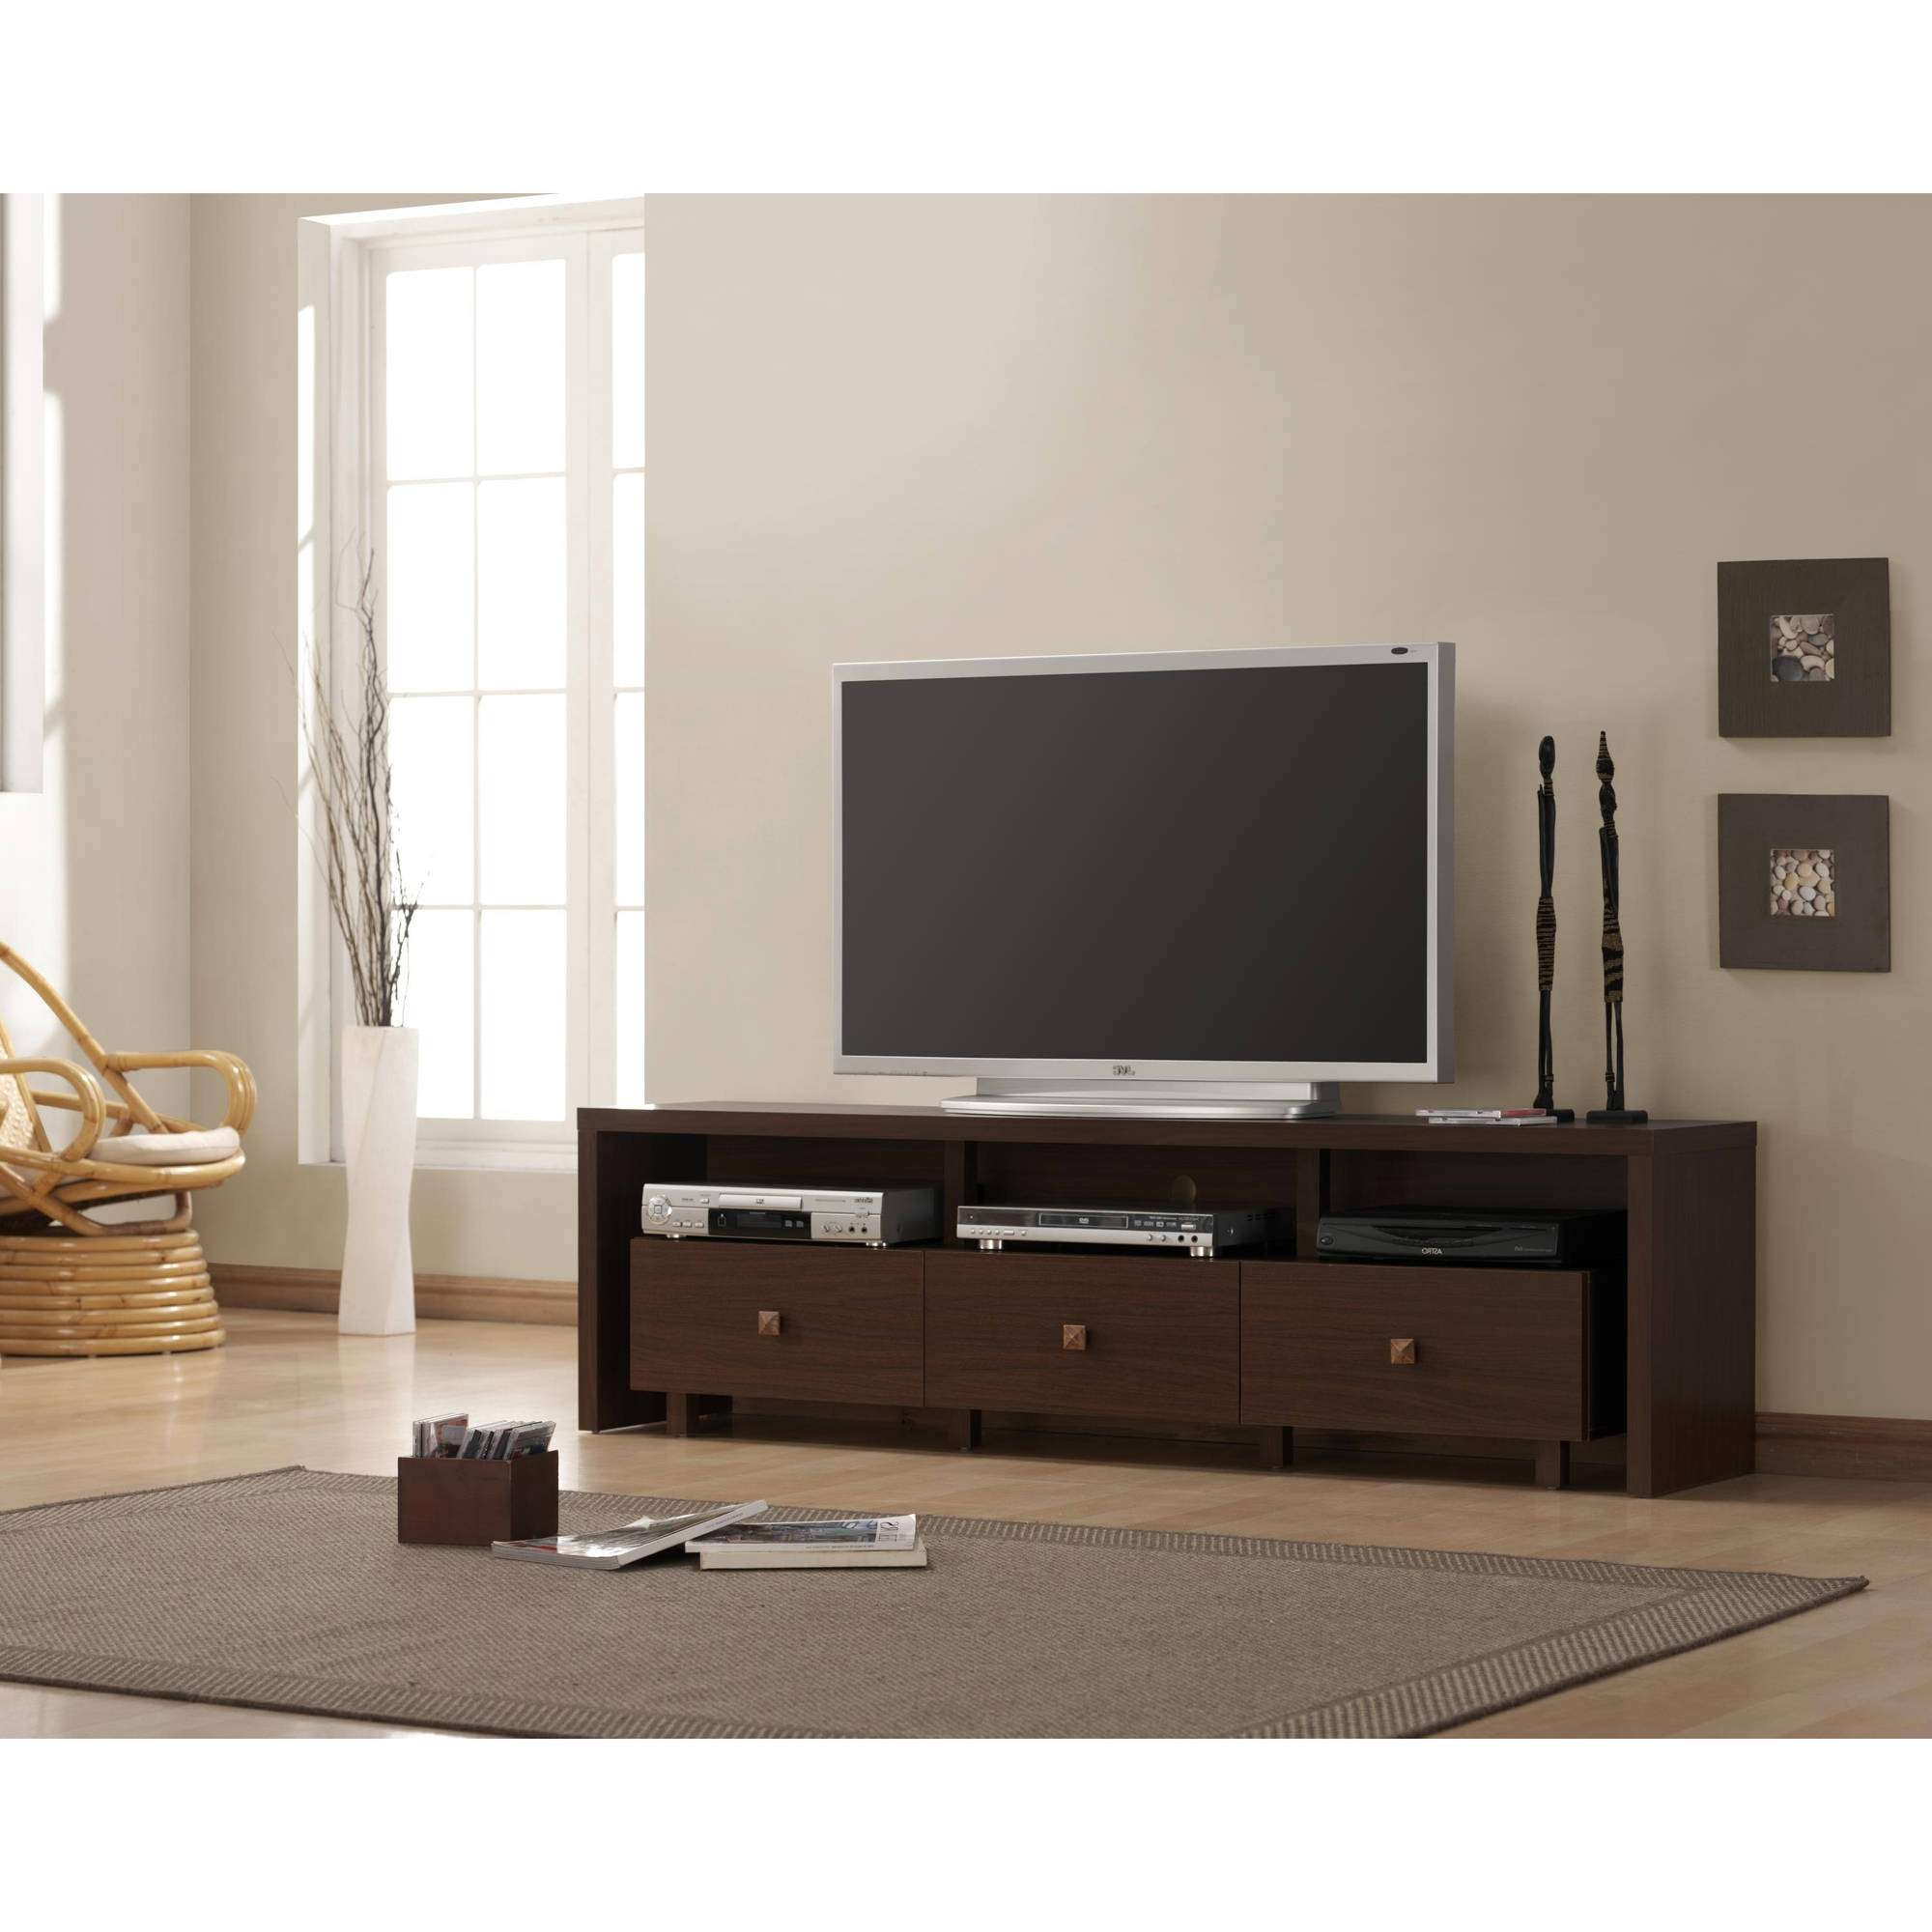 Tv : Wonderful Expresso Tv Stands Baxton Studio Matlock Modern In Expresso Tv Stands (View 9 of 15)